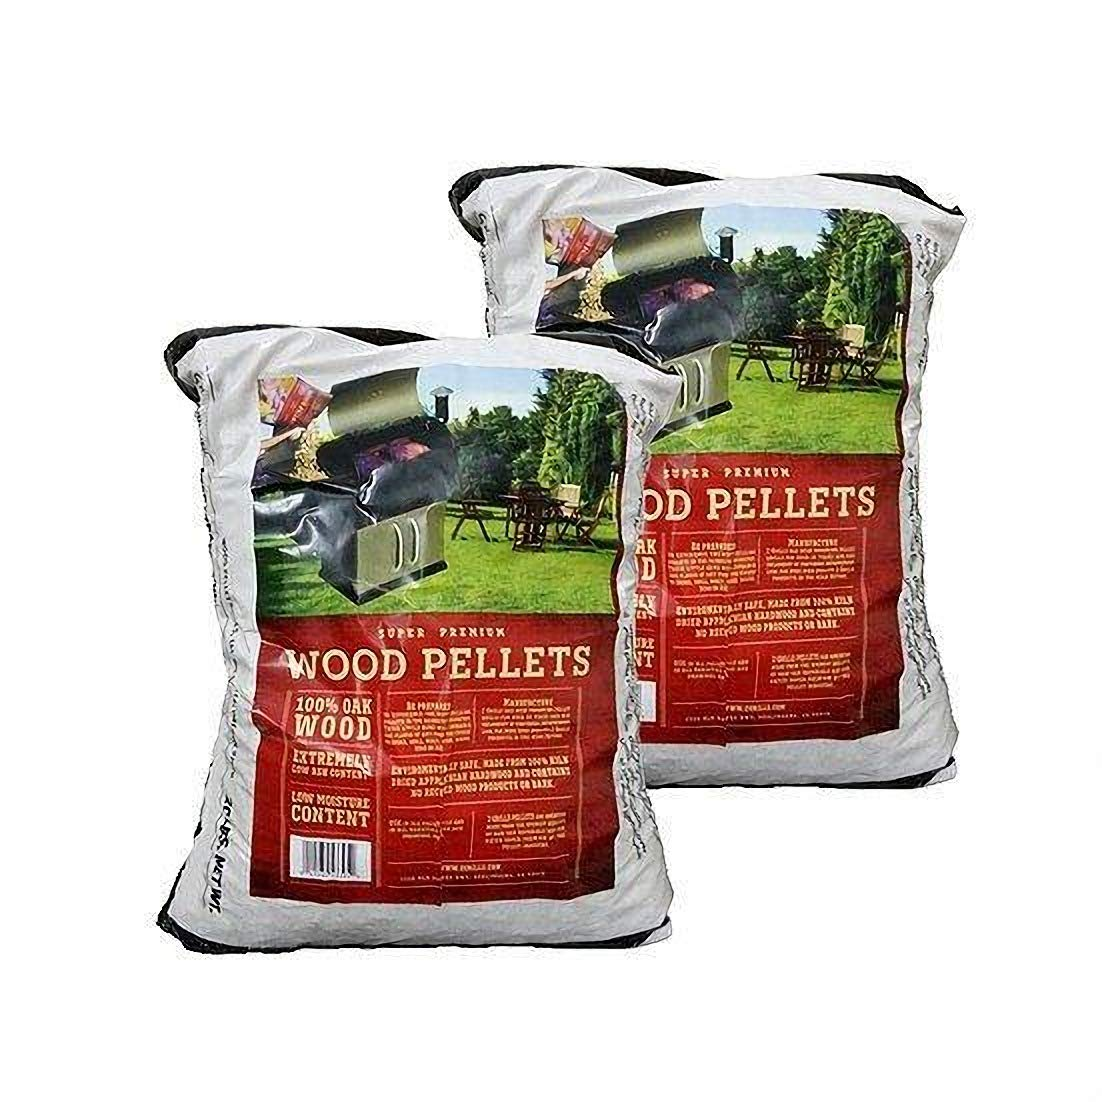 Z GRILLS 100% All-Natural Hardwood Pellets - 2 Pack- Grill, Smoke, Bake, Roast, Braise, and BBQ (20 lb. Bag) - Made in USA by Z GRILLS